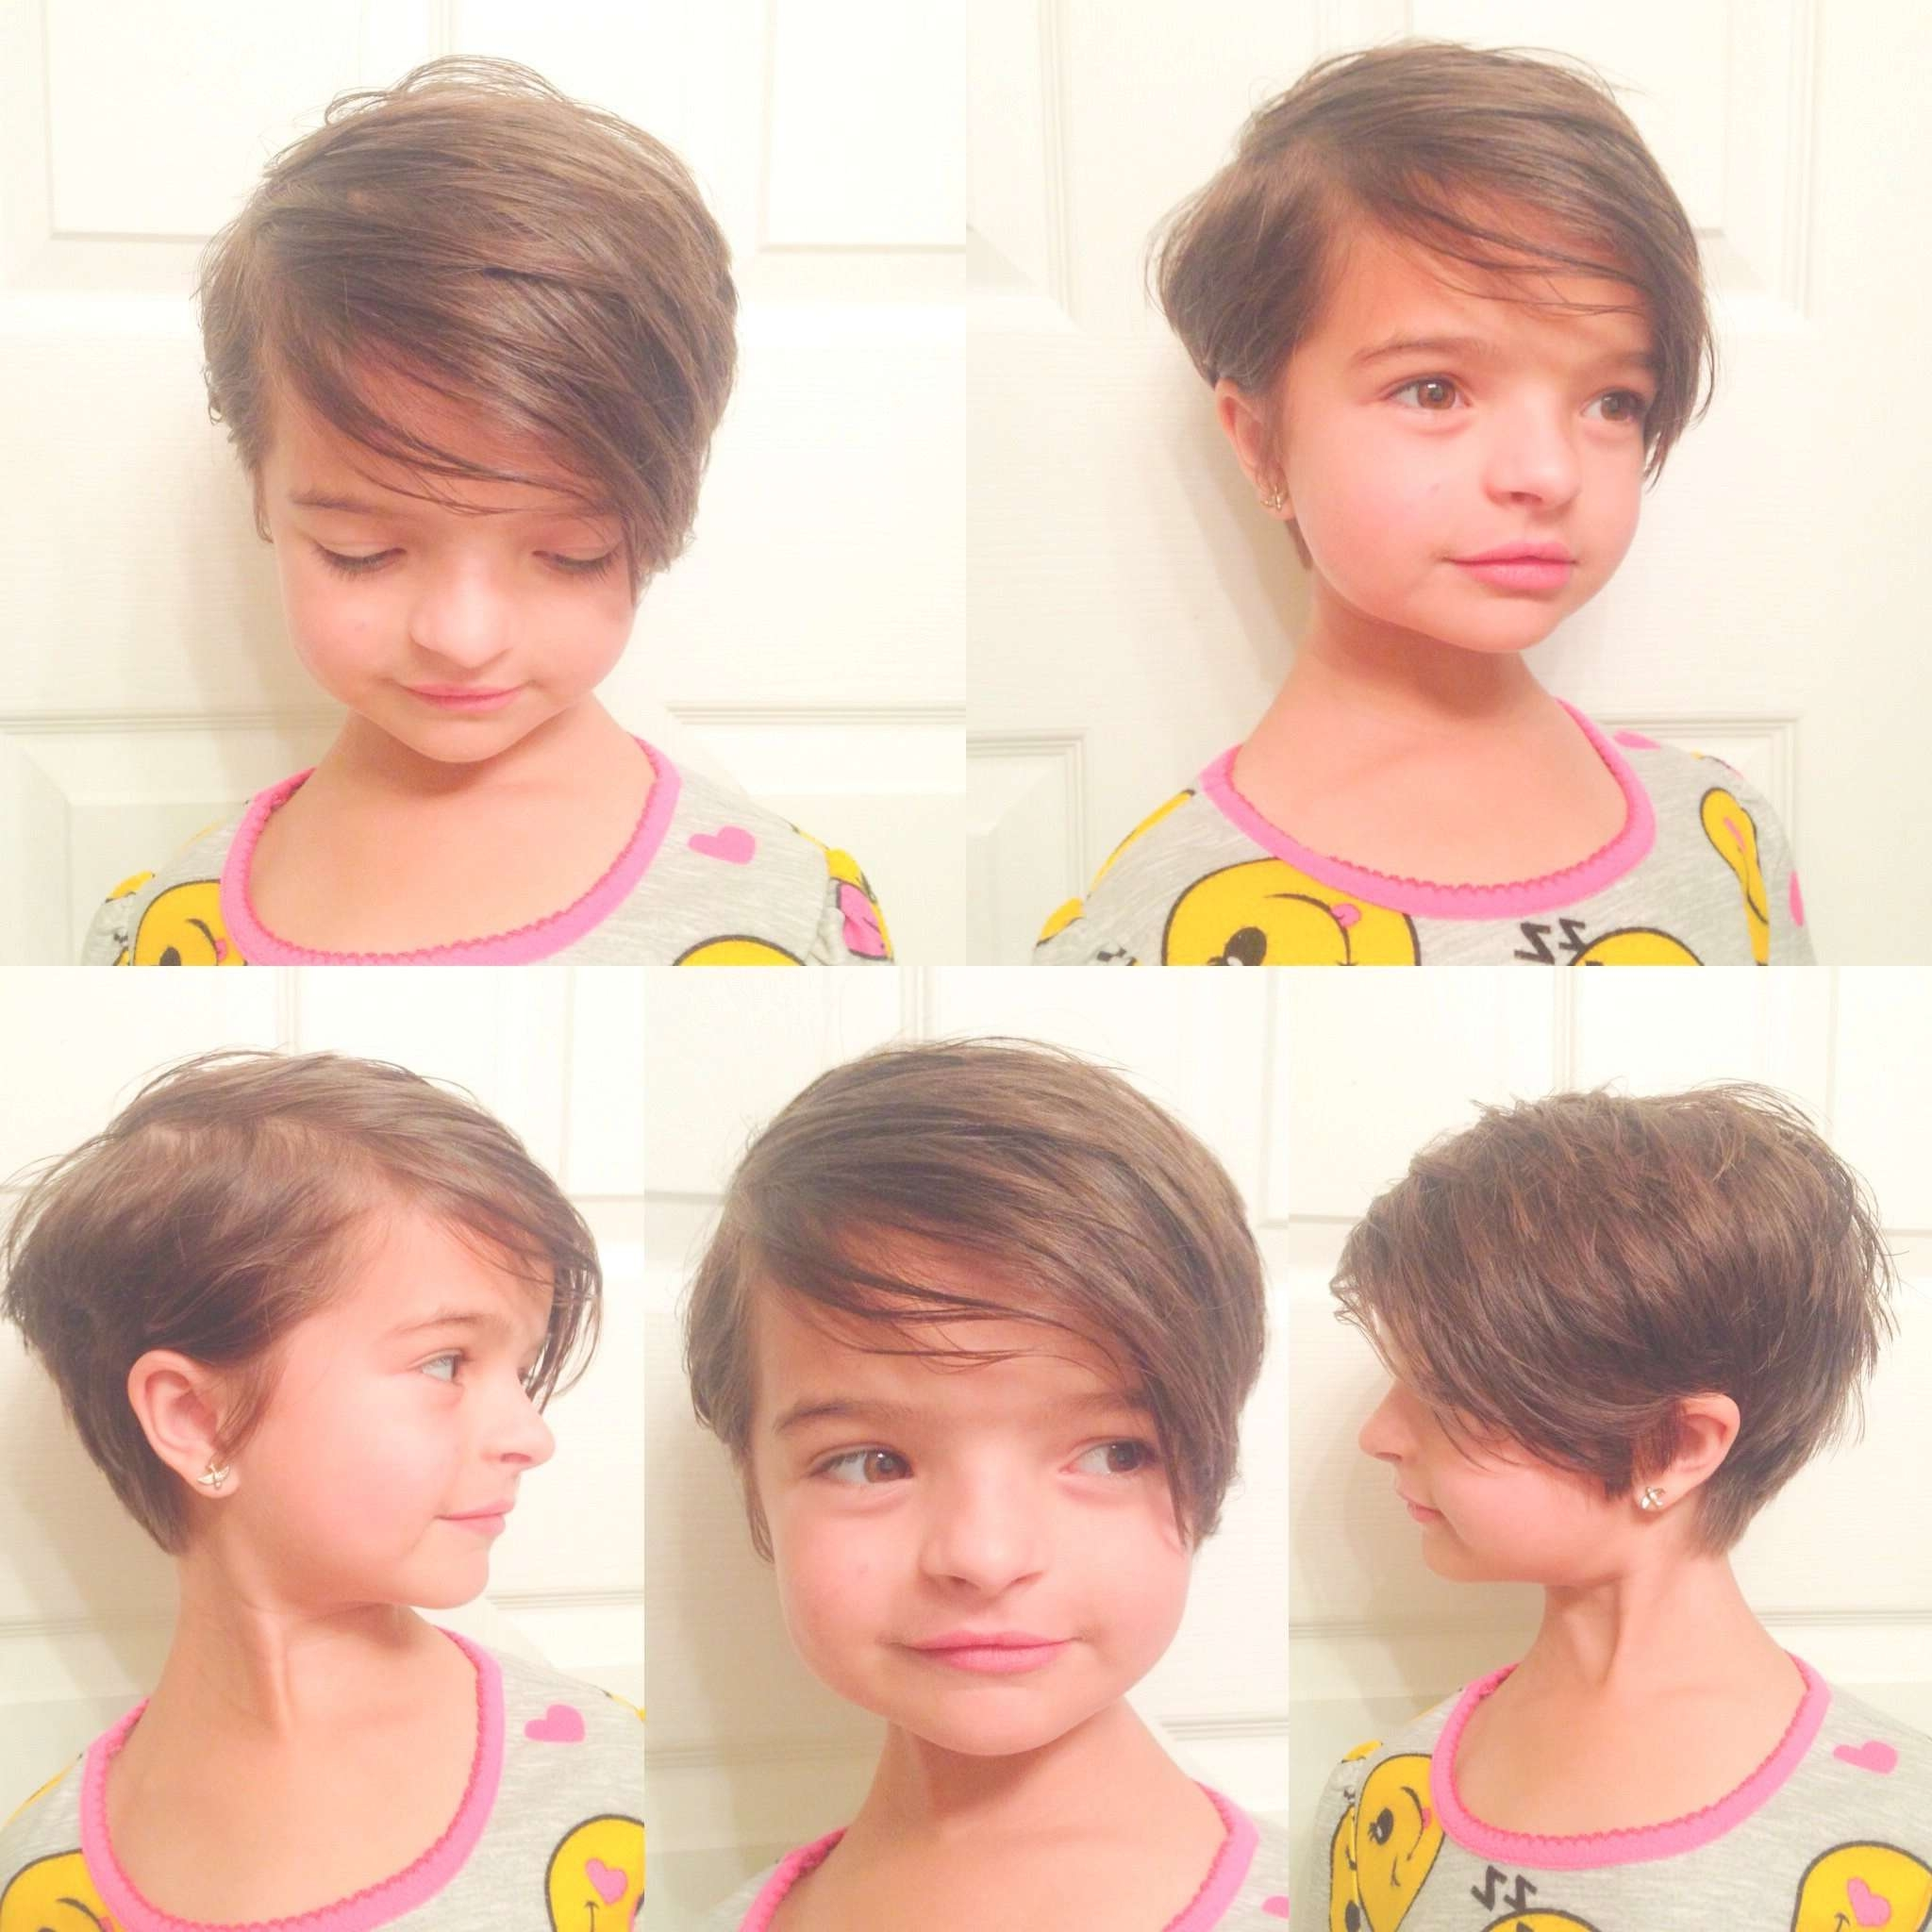 Explore Photos Of Baby Girl Pixie Hairstyles Showing 1 Of 15 Photos